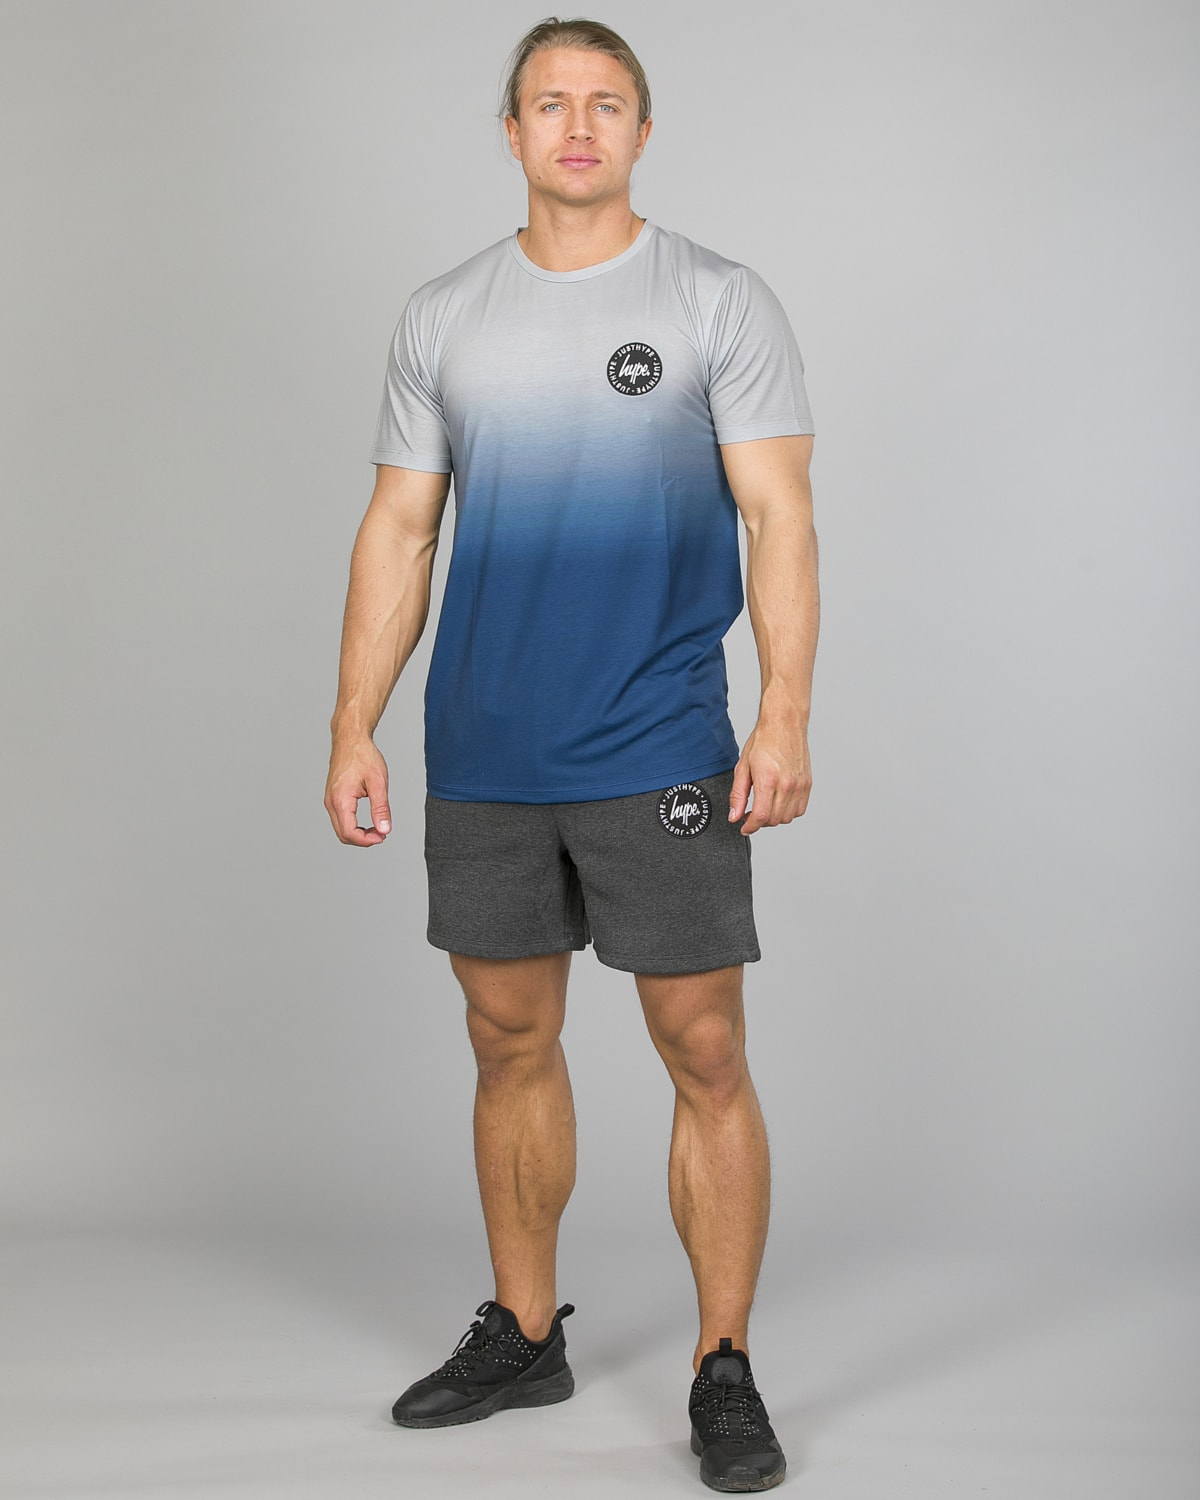 Hype Midnight Fade T-Shirt Men ss18210b Blue:Grey and Badge Shorts Men tm2ndrp16 Charcoal